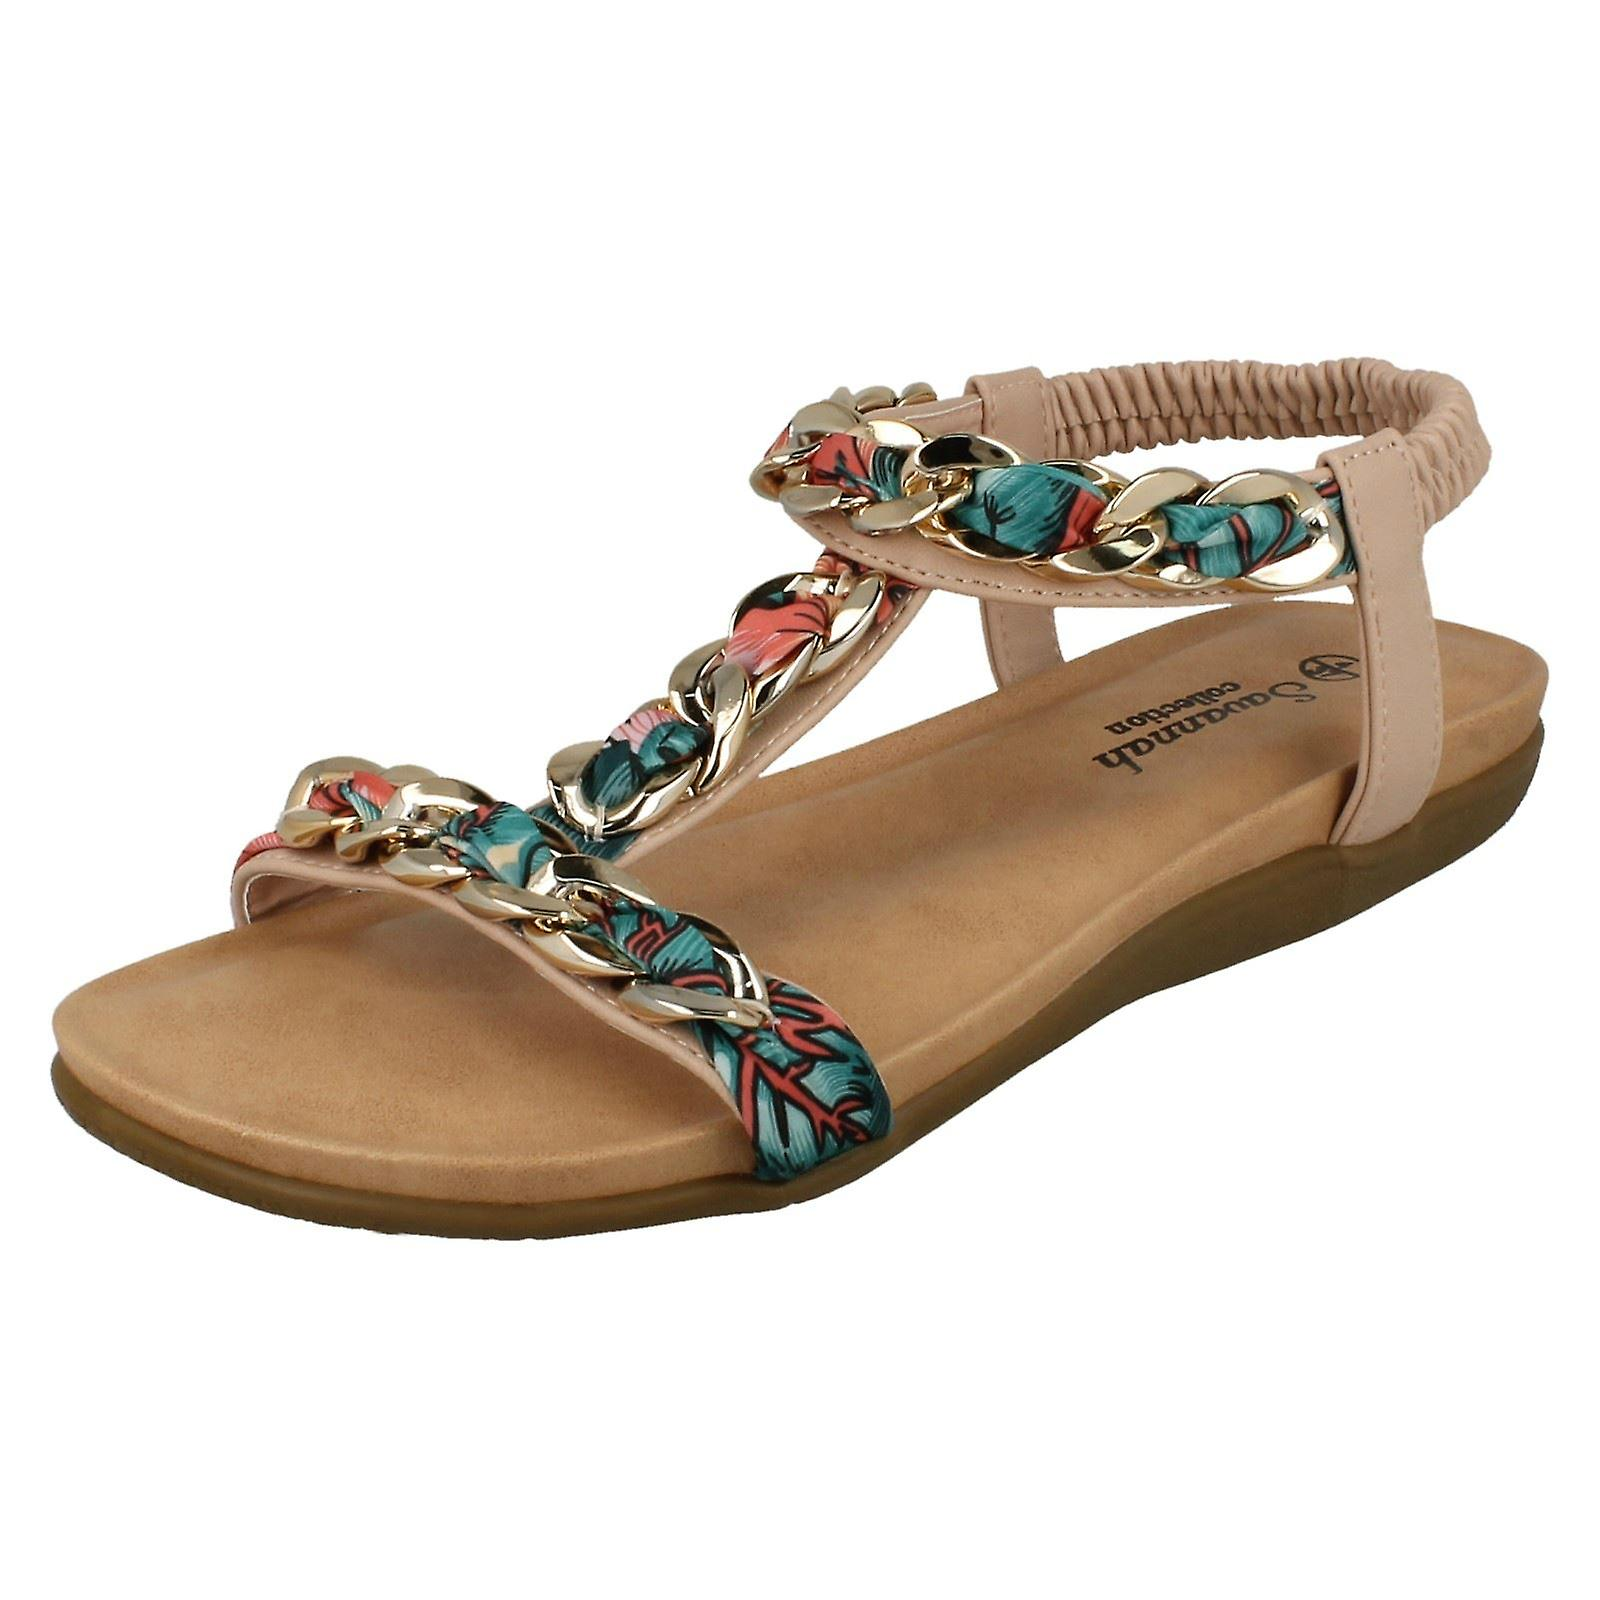 Sandals Braided F00063 Savannah Chain Ladies xwXq0YPn